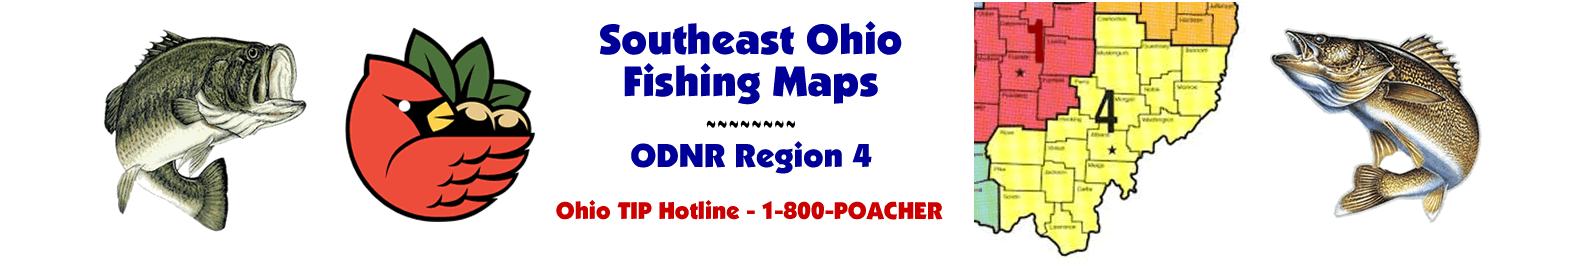 Southeast Ohio Fishing Maps - ODNR Region 4